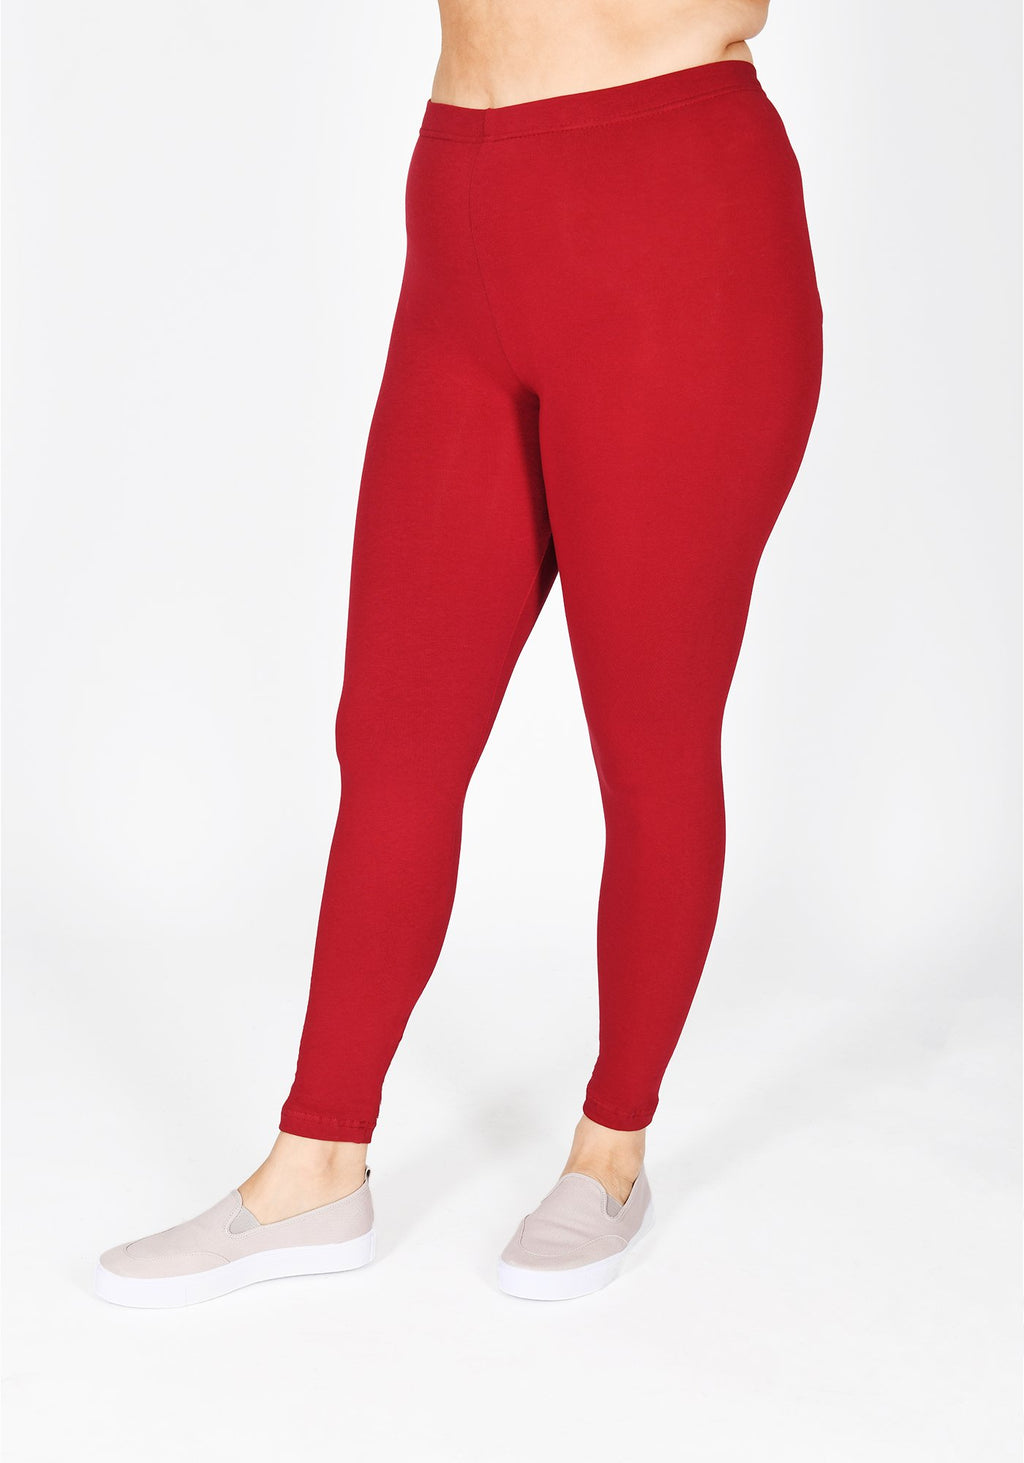 Classic Plus Size Red Wine Leggings 1